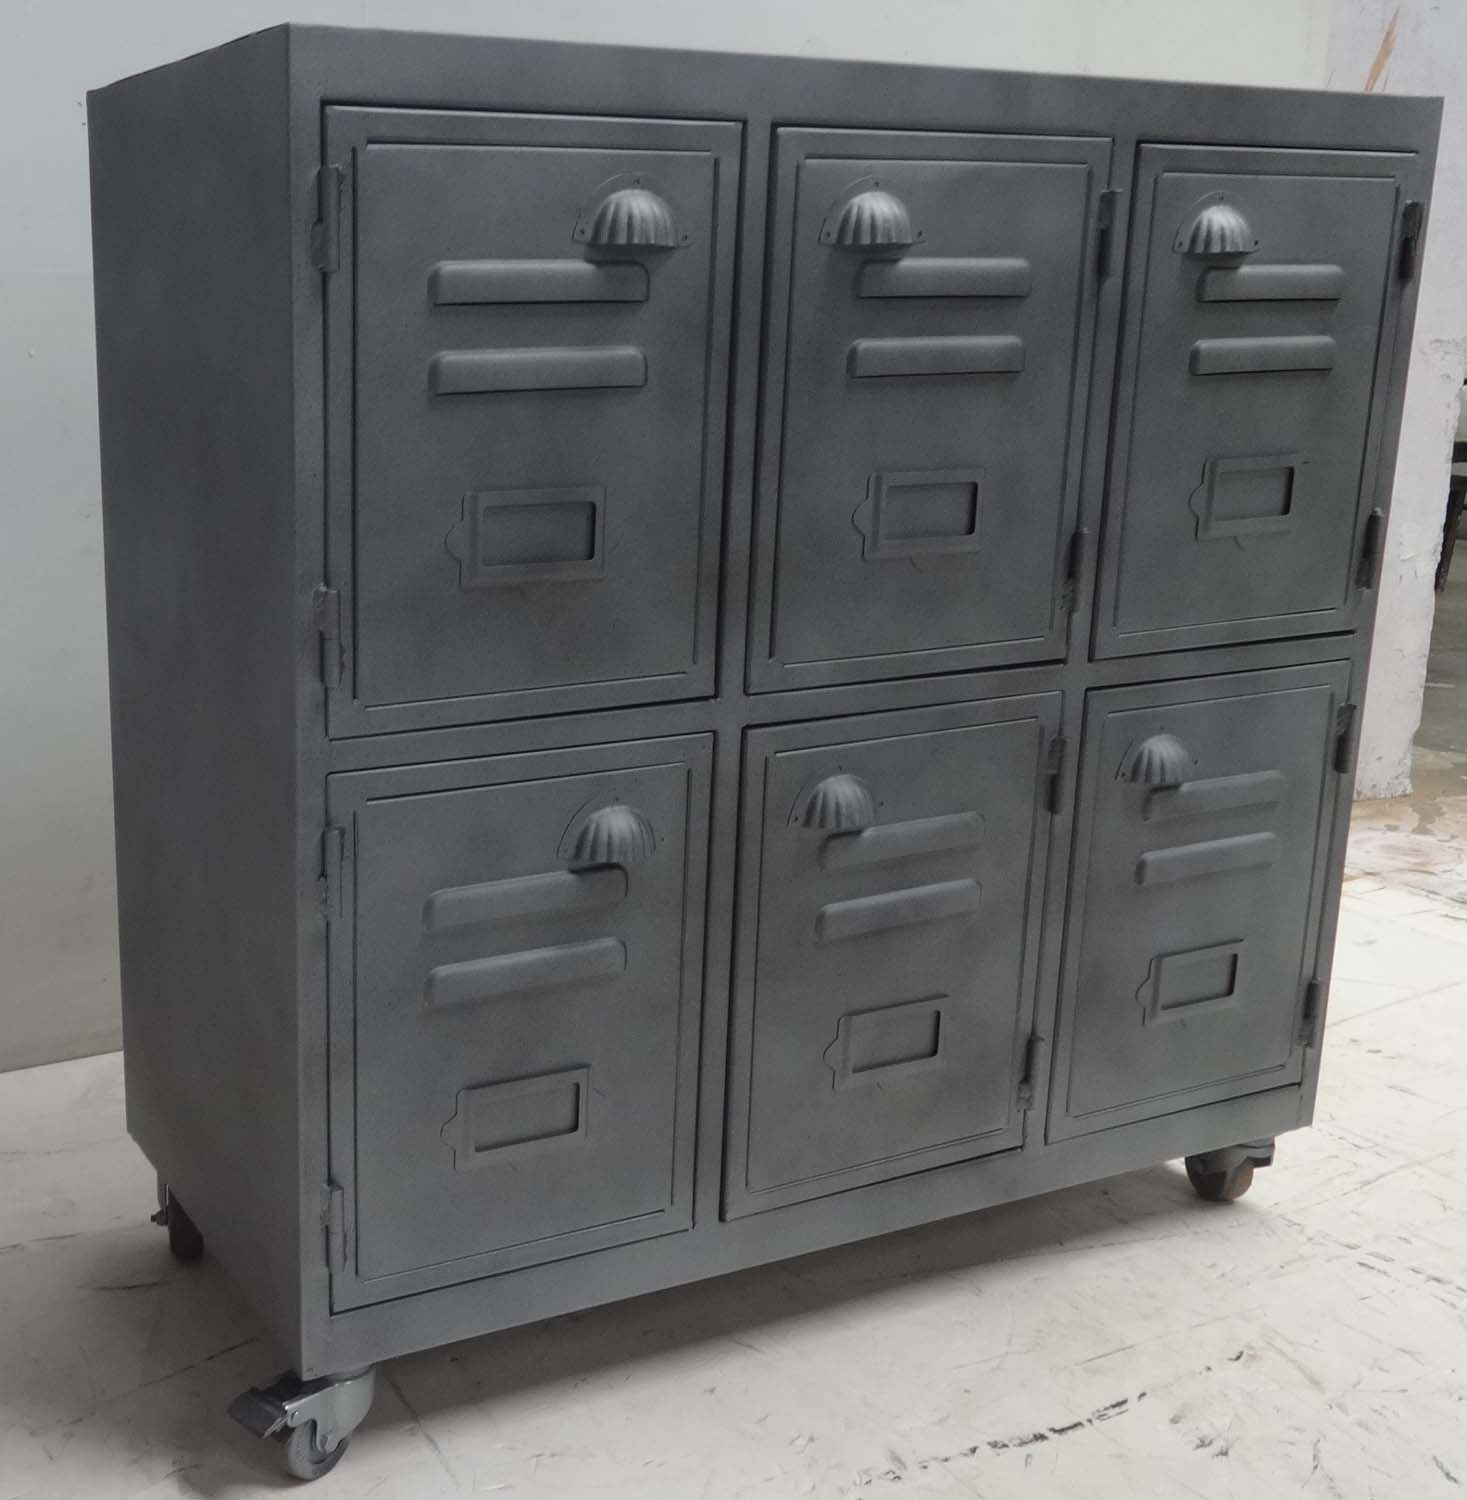 Vintage Industrial Metal Locker Cabinet. Unique Vintage Piece Of Furniture Ideas